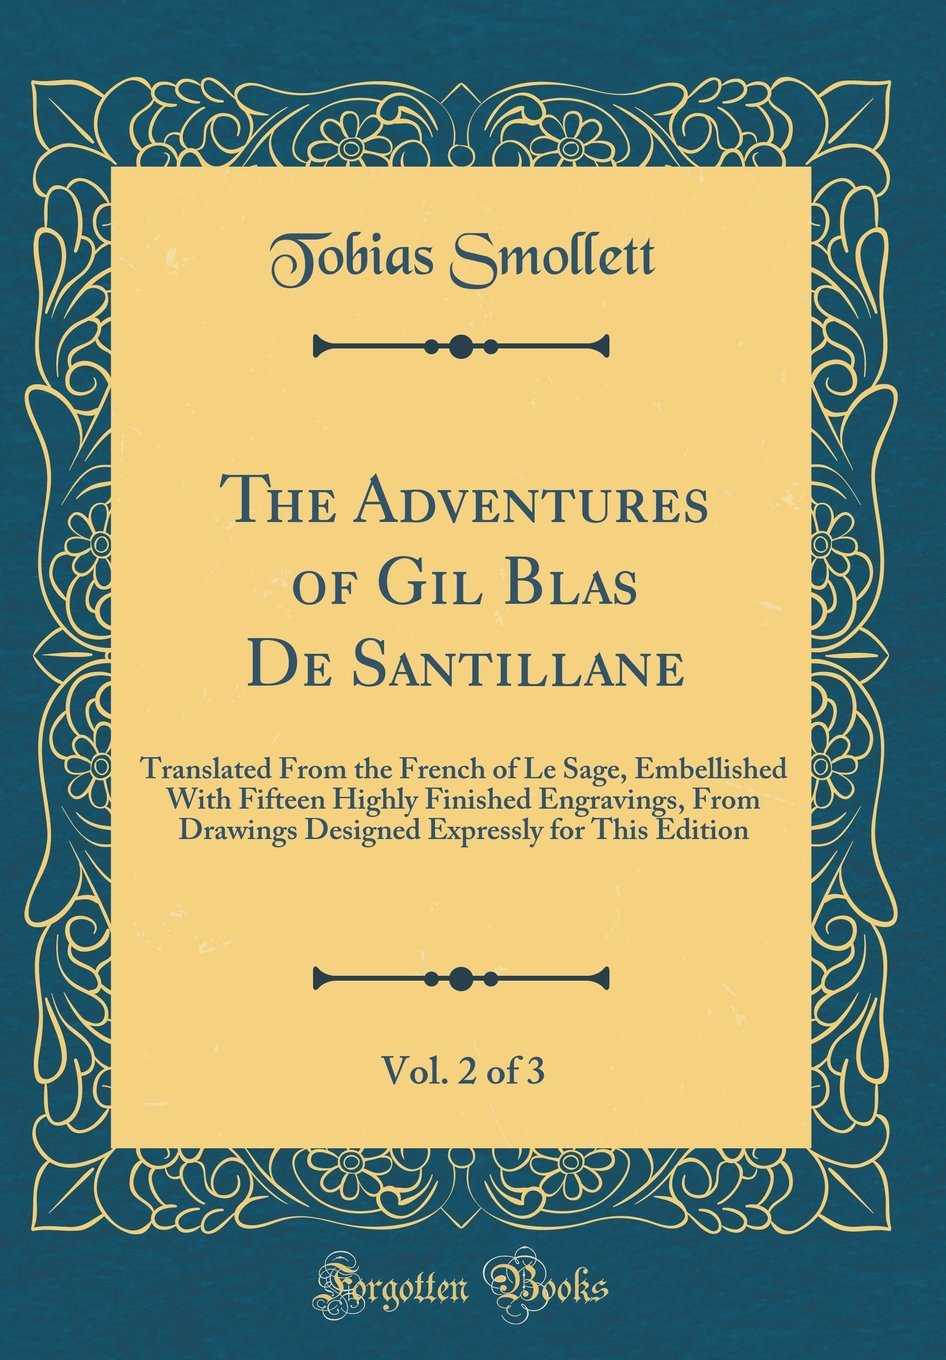 Download The Adventures of Gil Blas De Santillane, Vol. 2 of 3: Translated From the French of Le Sage, Embellished With Fifteen Highly Finished Engravings, ... Expressly for This Edition (Classic Reprint) ebook